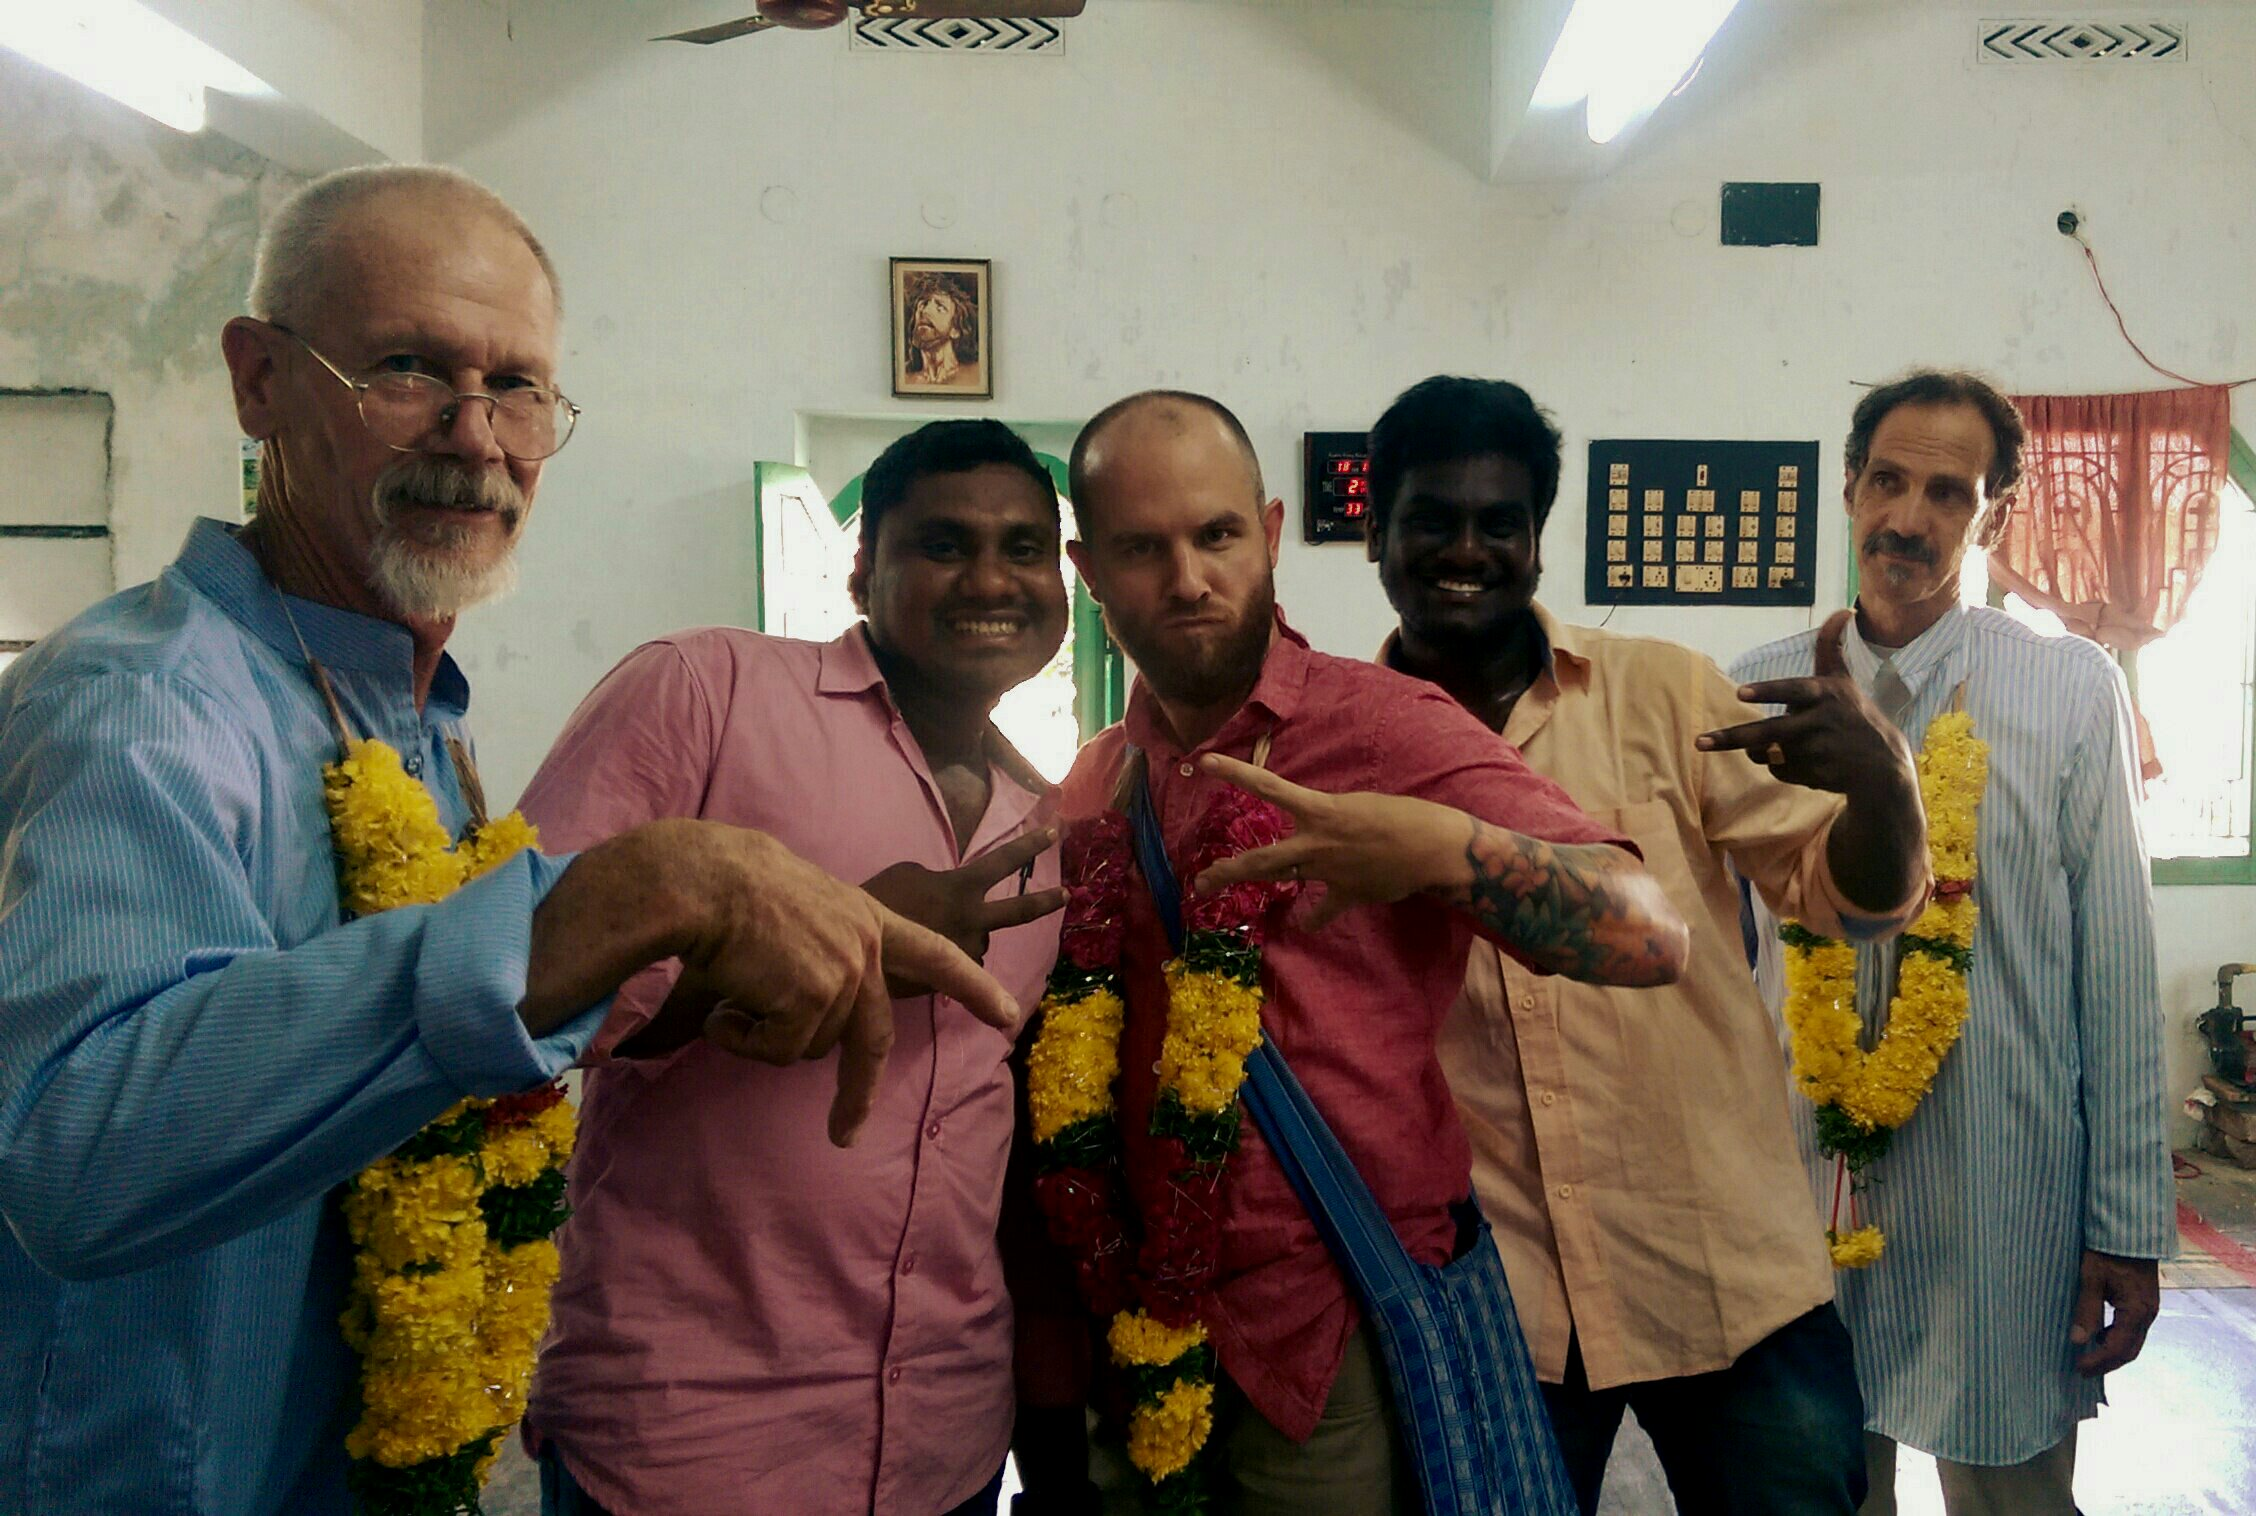 With some friends, gettin all gangsta in India!